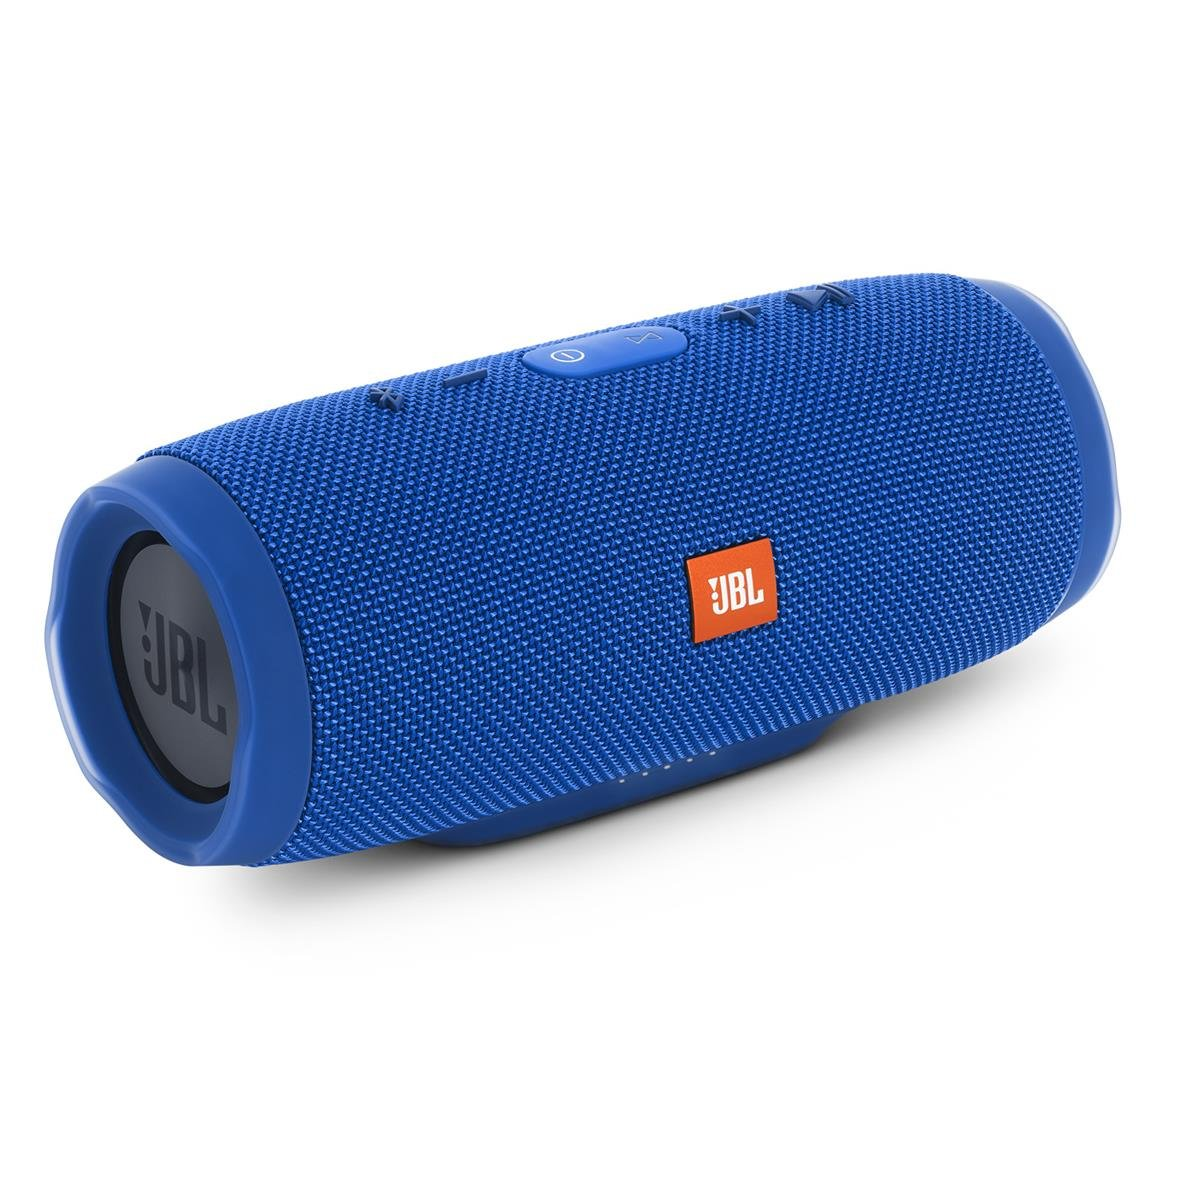 JBL Charge 3 Waterproof Bluetooth Speaker -Blue (Certified Refurbished) by JBL (Image #1)